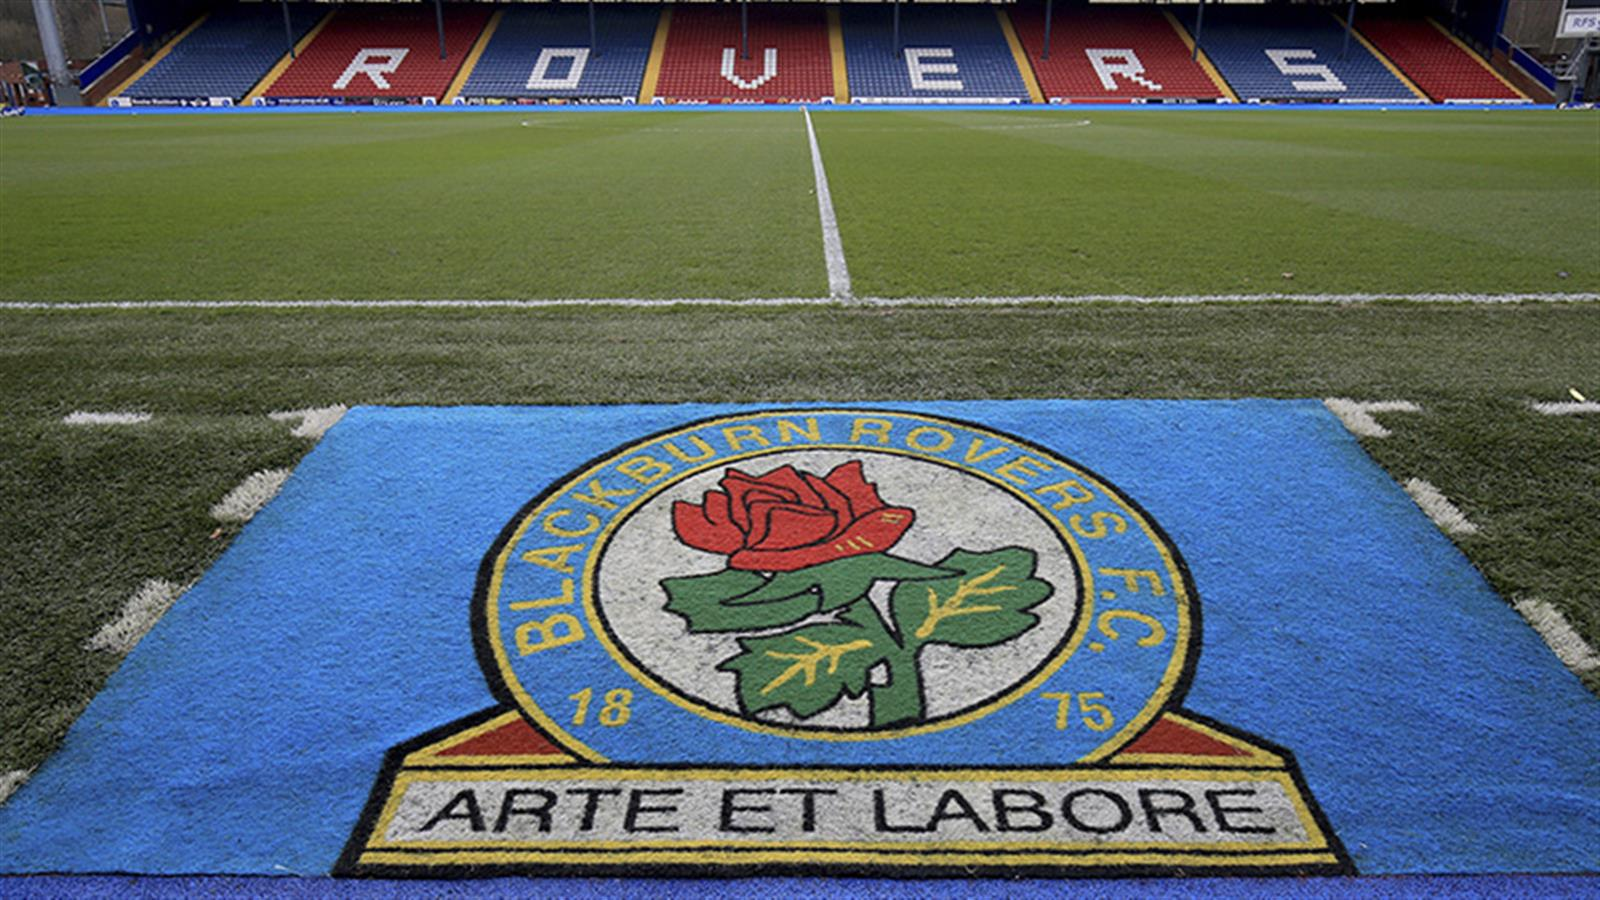 Blackburn rovers tickets on sale news preston north end for Newspaper wallpaper for sale